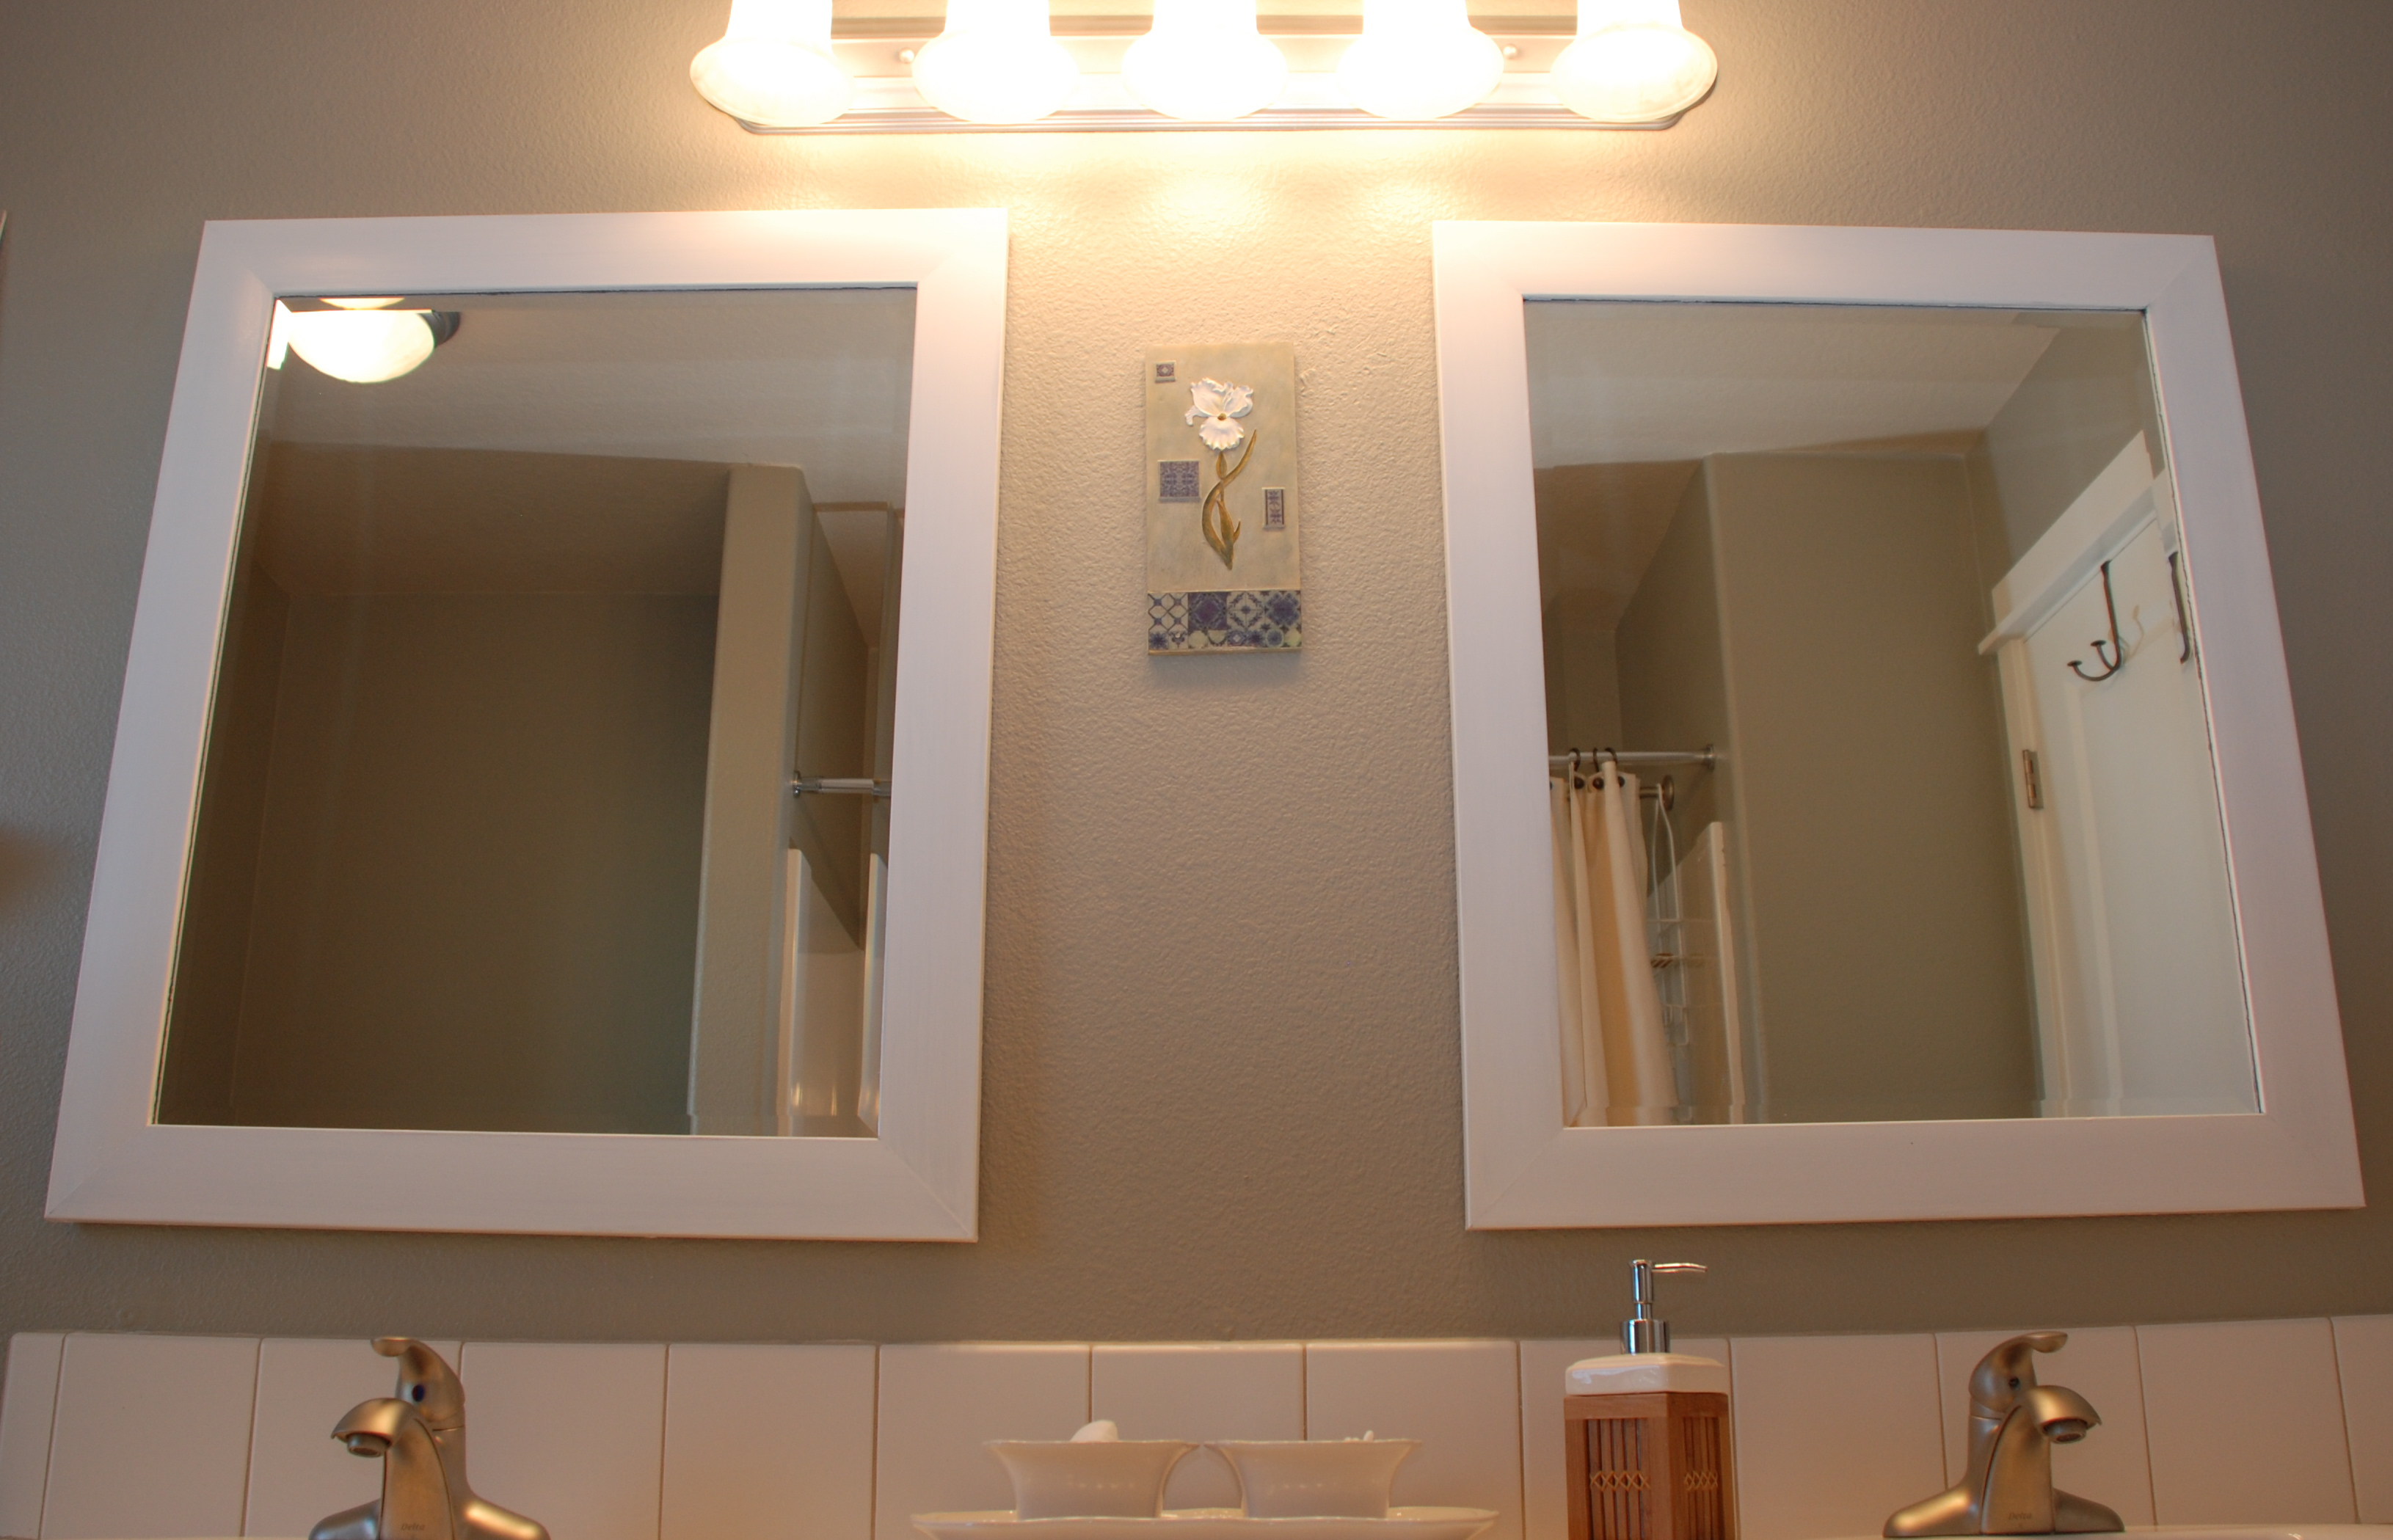 Before amp after bliss our guest bath mini makeover tell